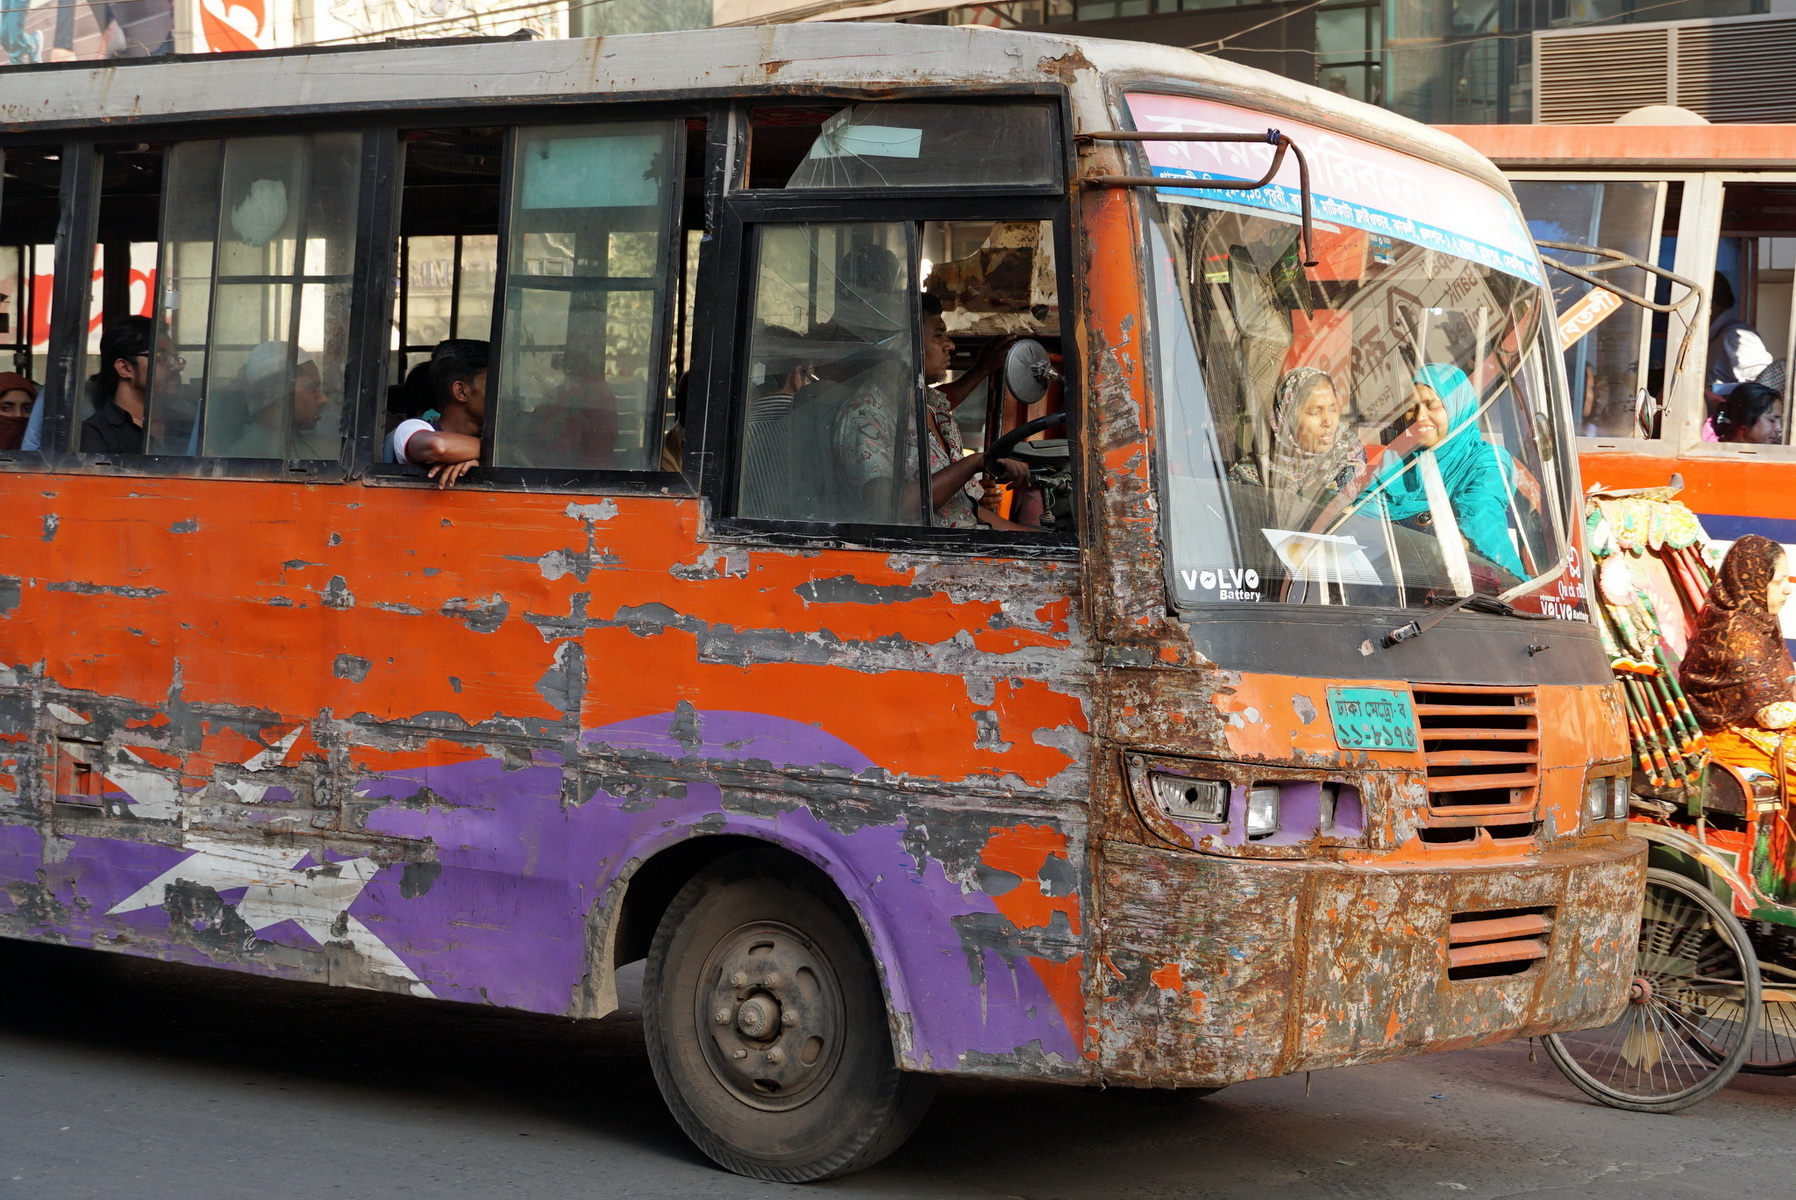 Bus in Dhake